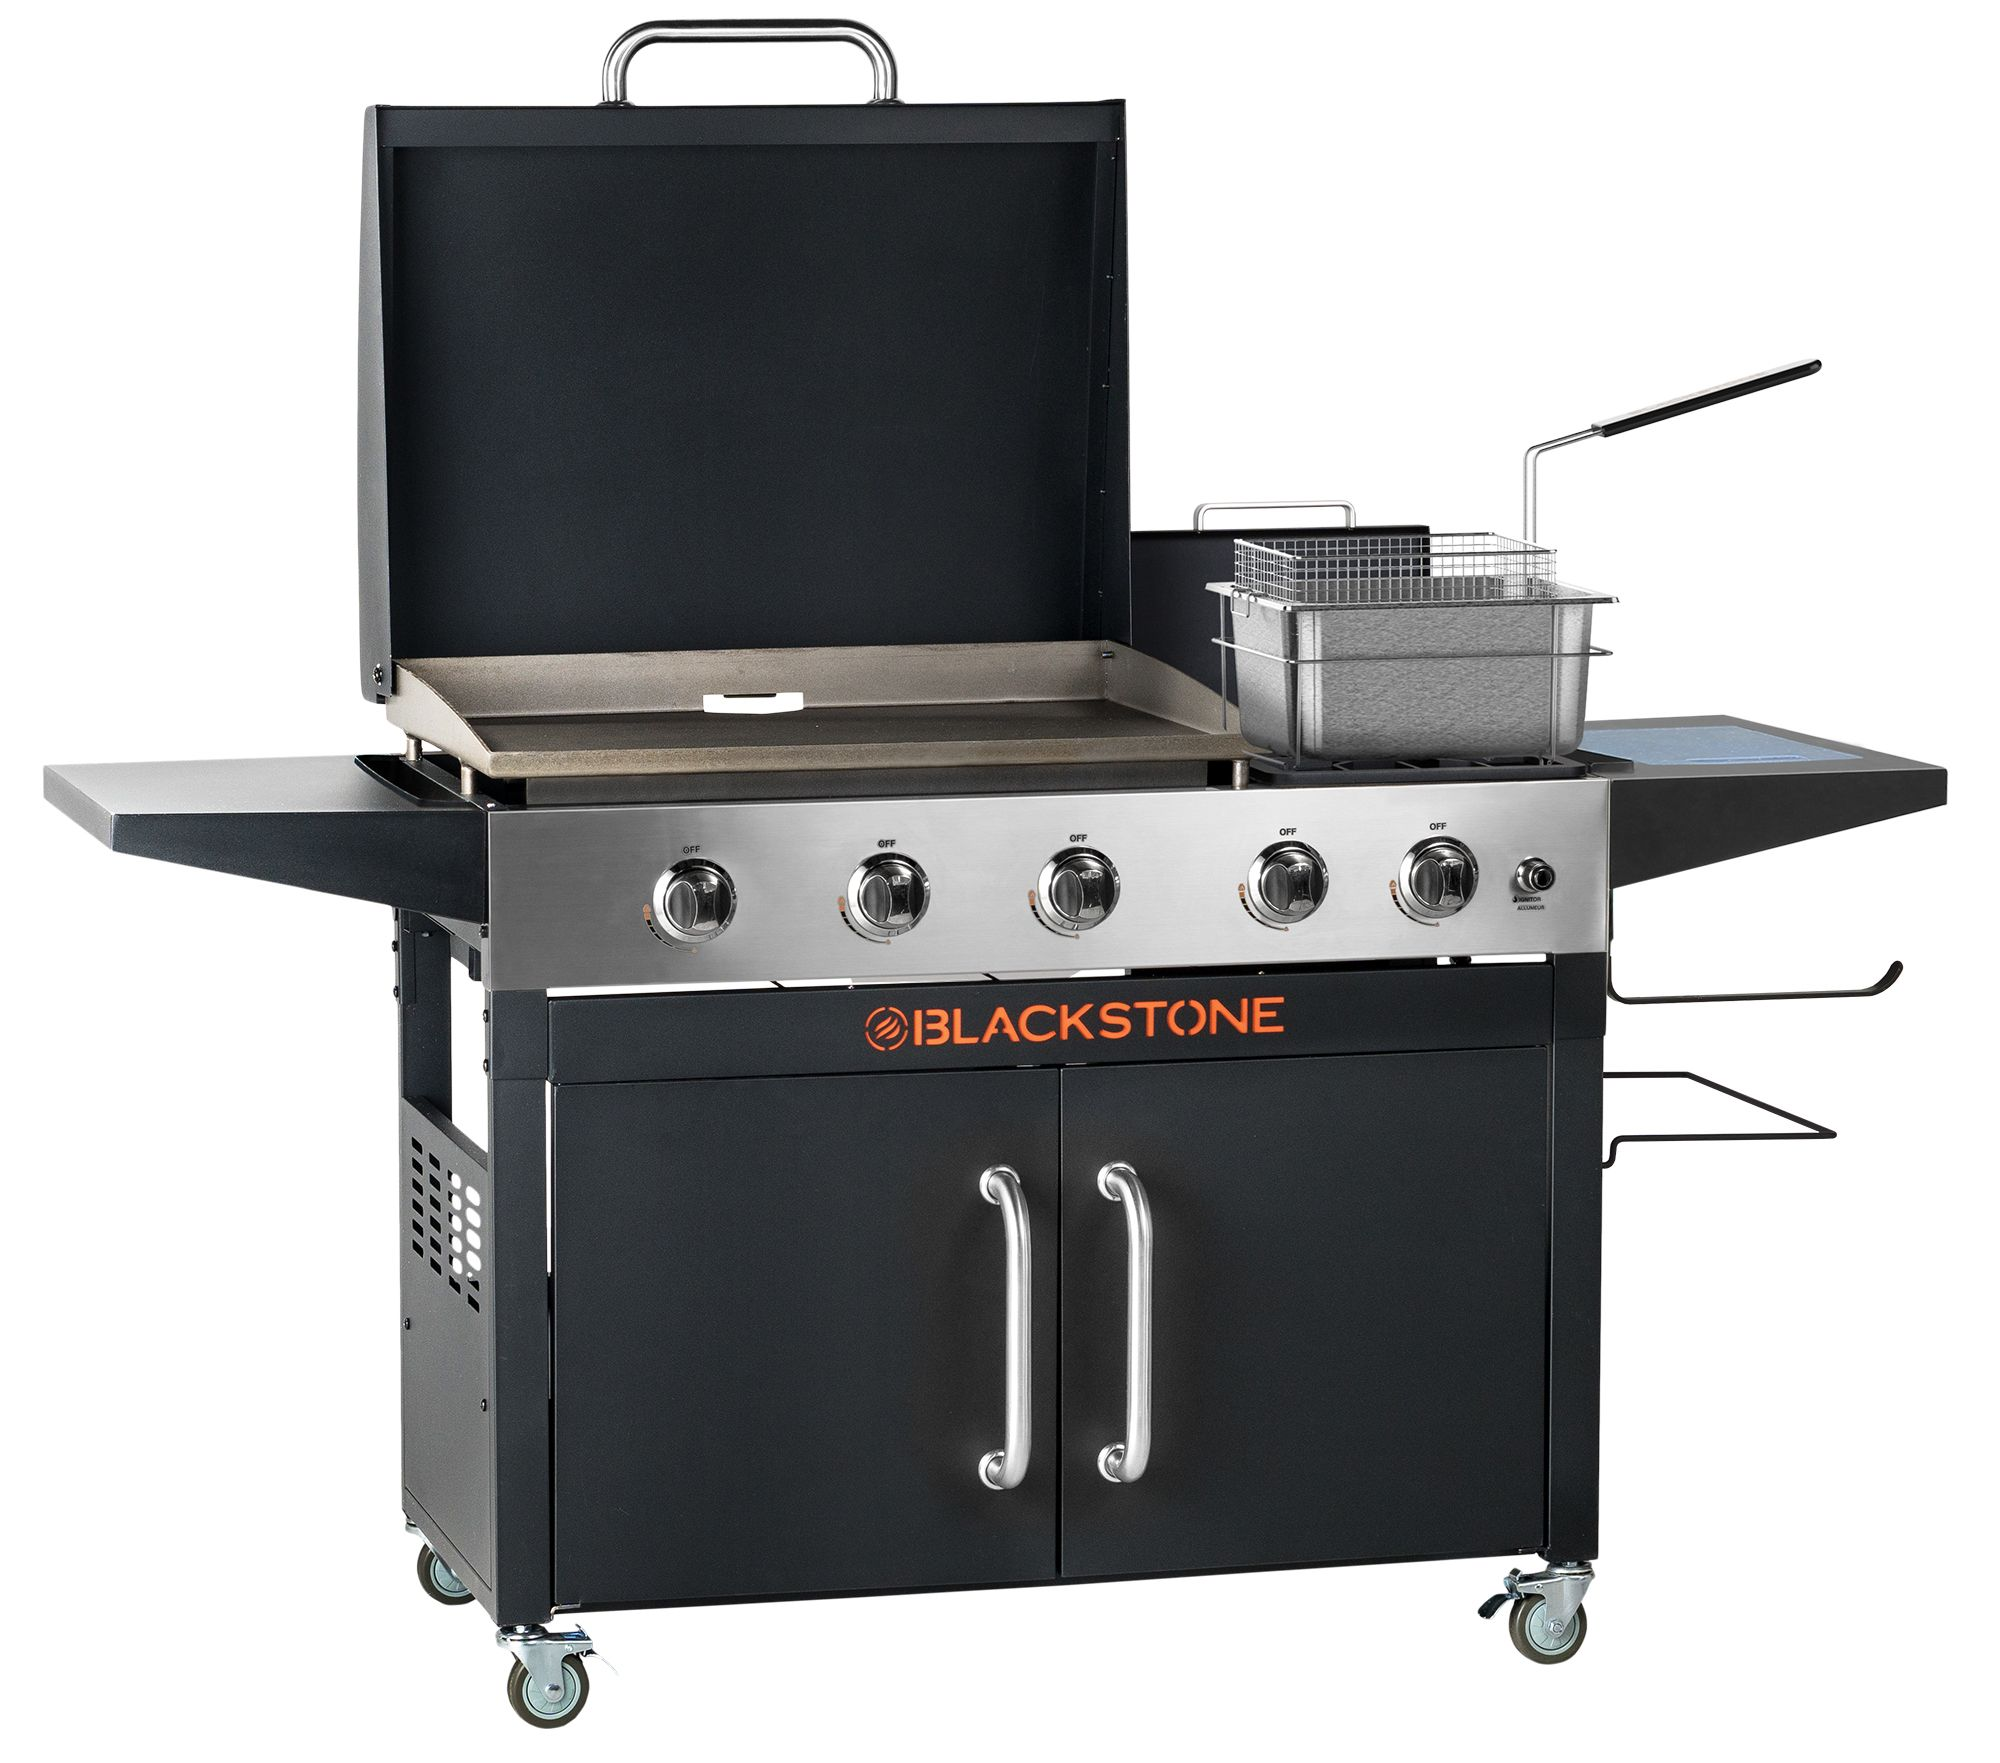 Blackstone Range Top Combo 28 Griddle With Bonus Fryer Walmart Com In 2020 Griddle Cooking Grilling Outdoor Kitchen Appliances